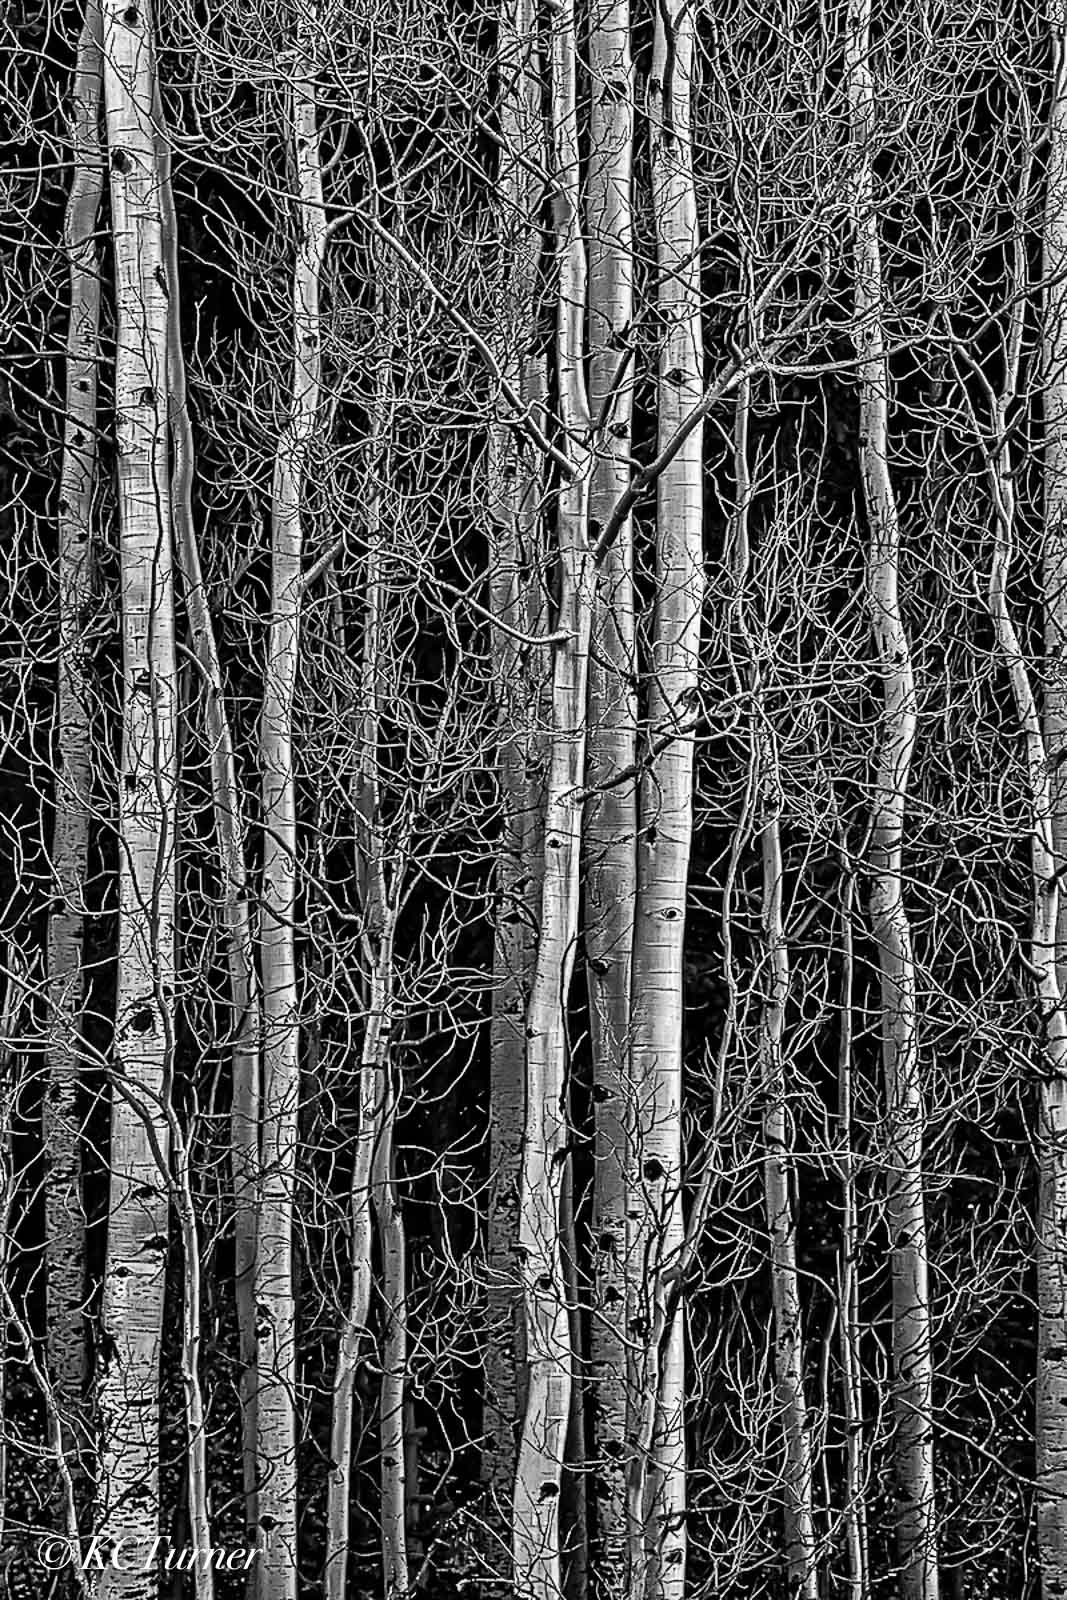 Colorado, monochrome, black and white, photograqph, silver, aspen trees, photo